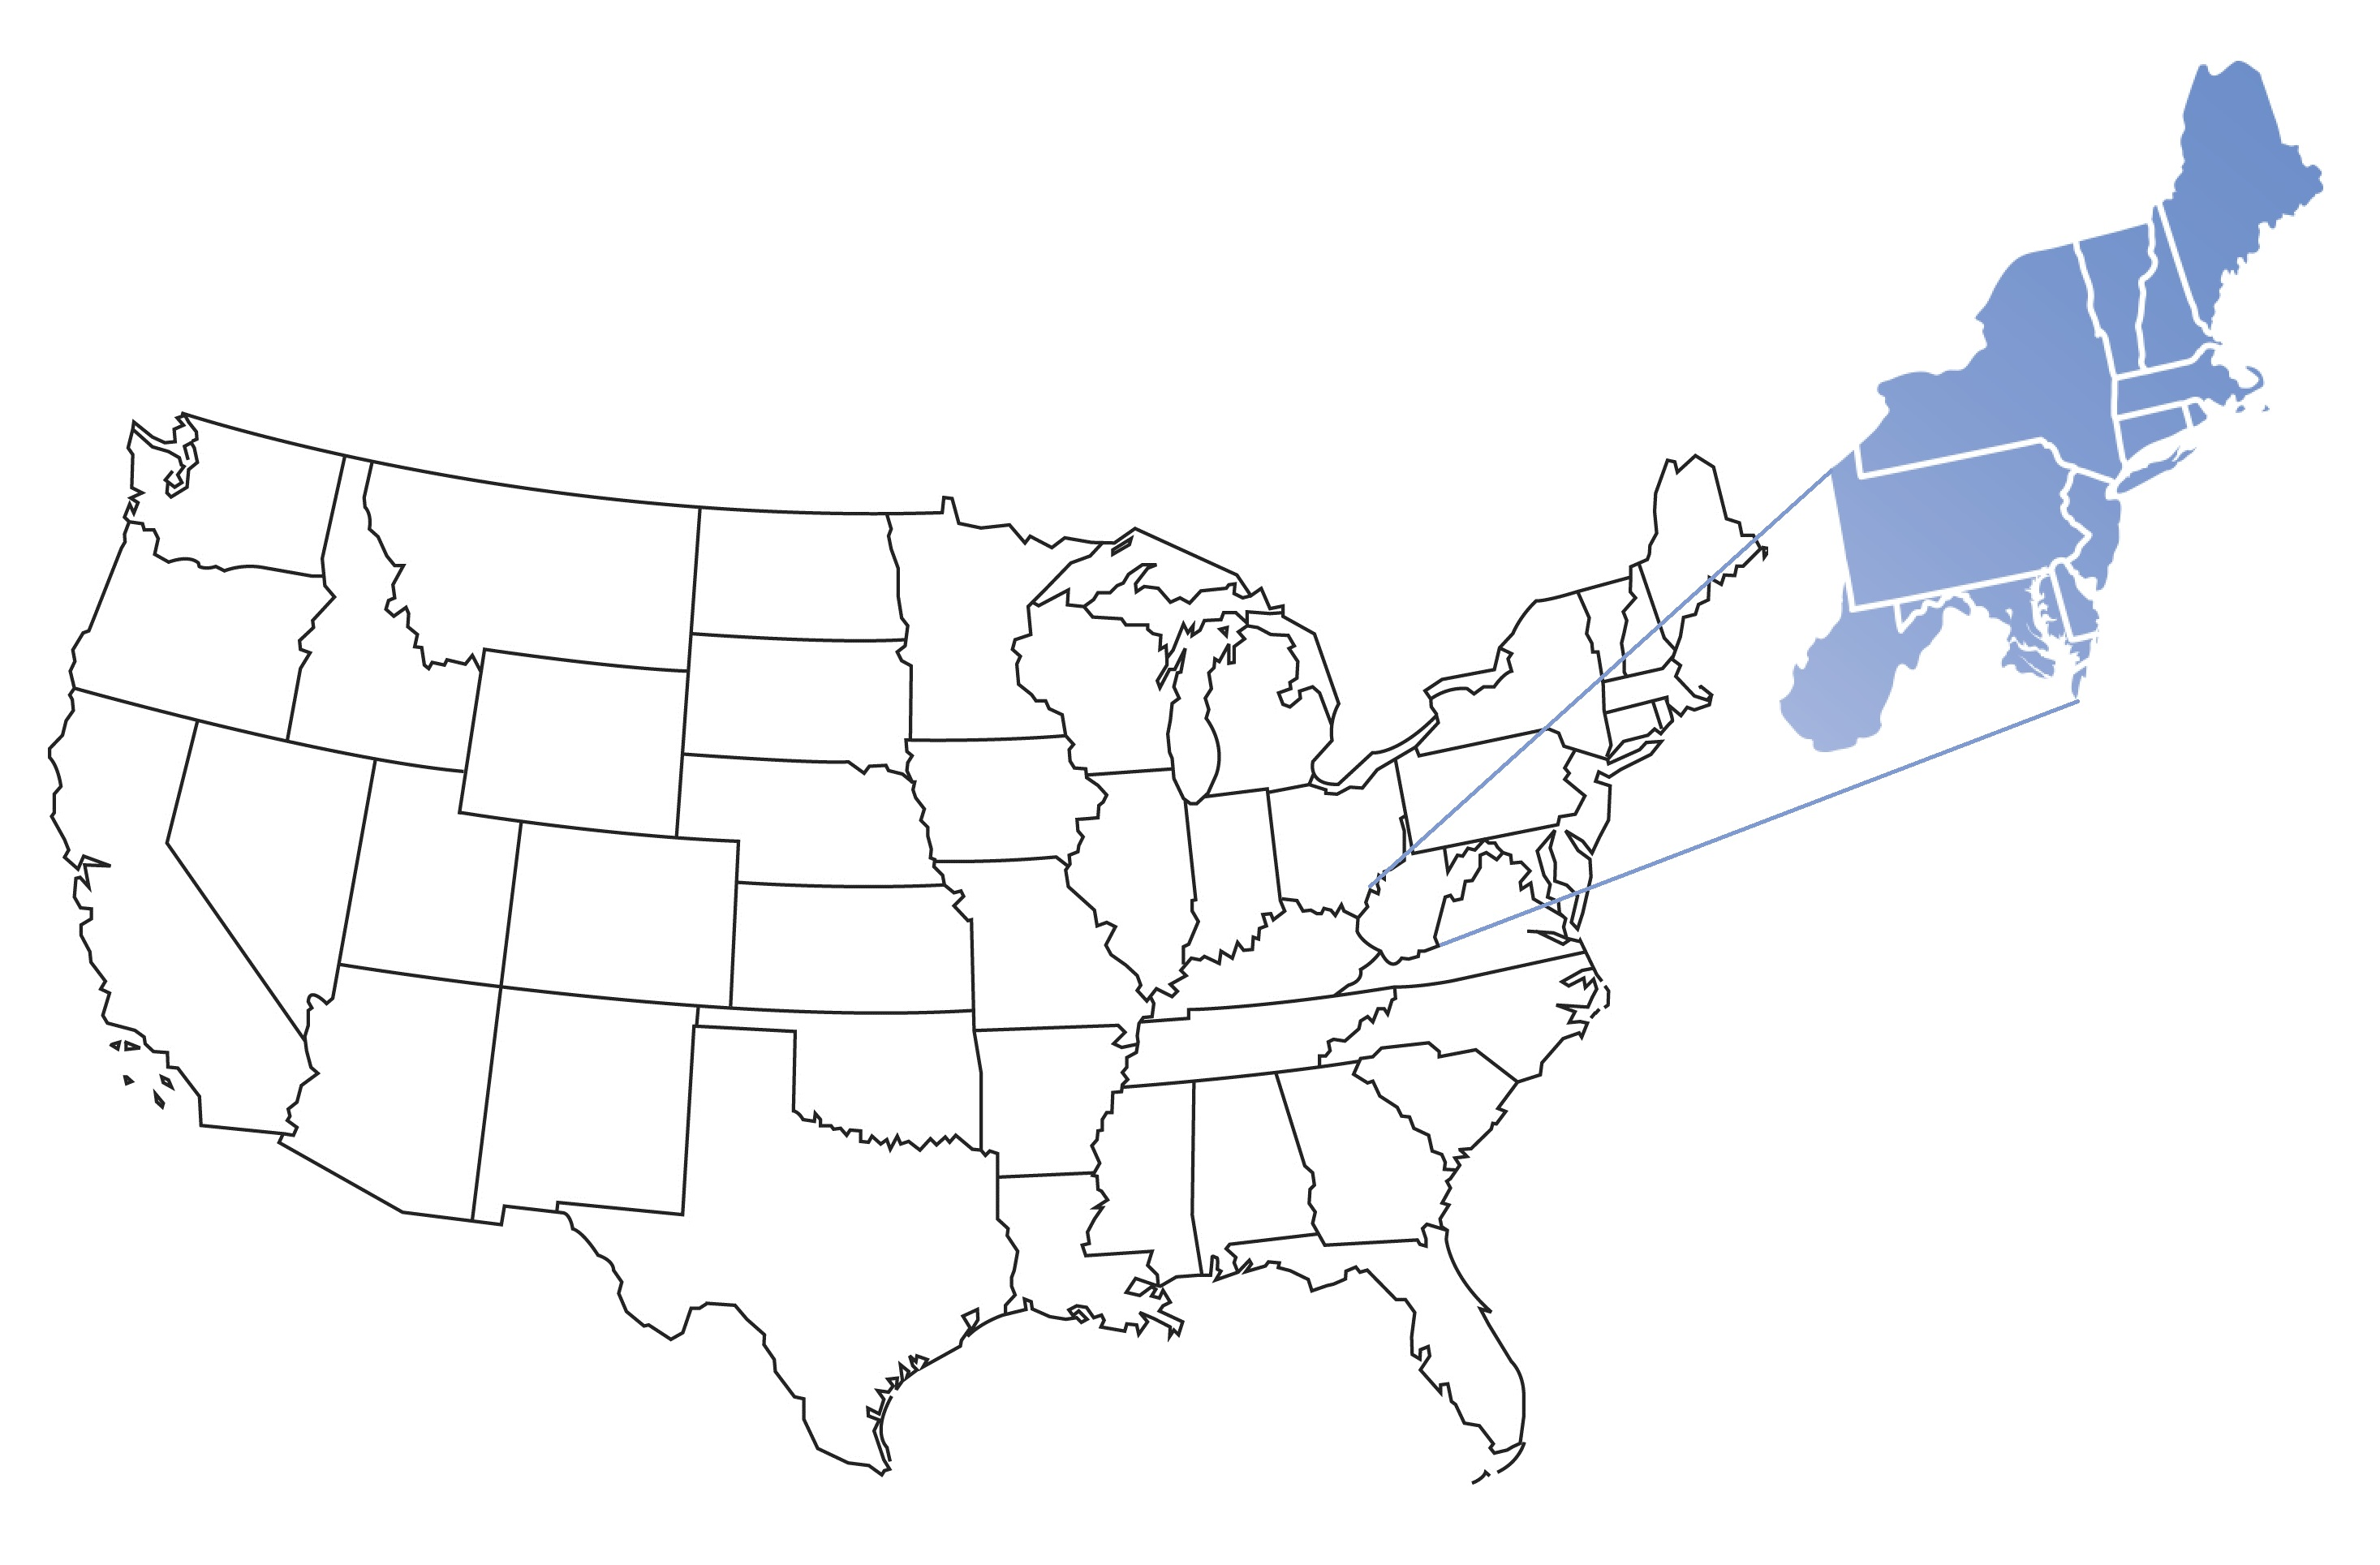 A line drawing of the united states with the east region popping out and shaded in